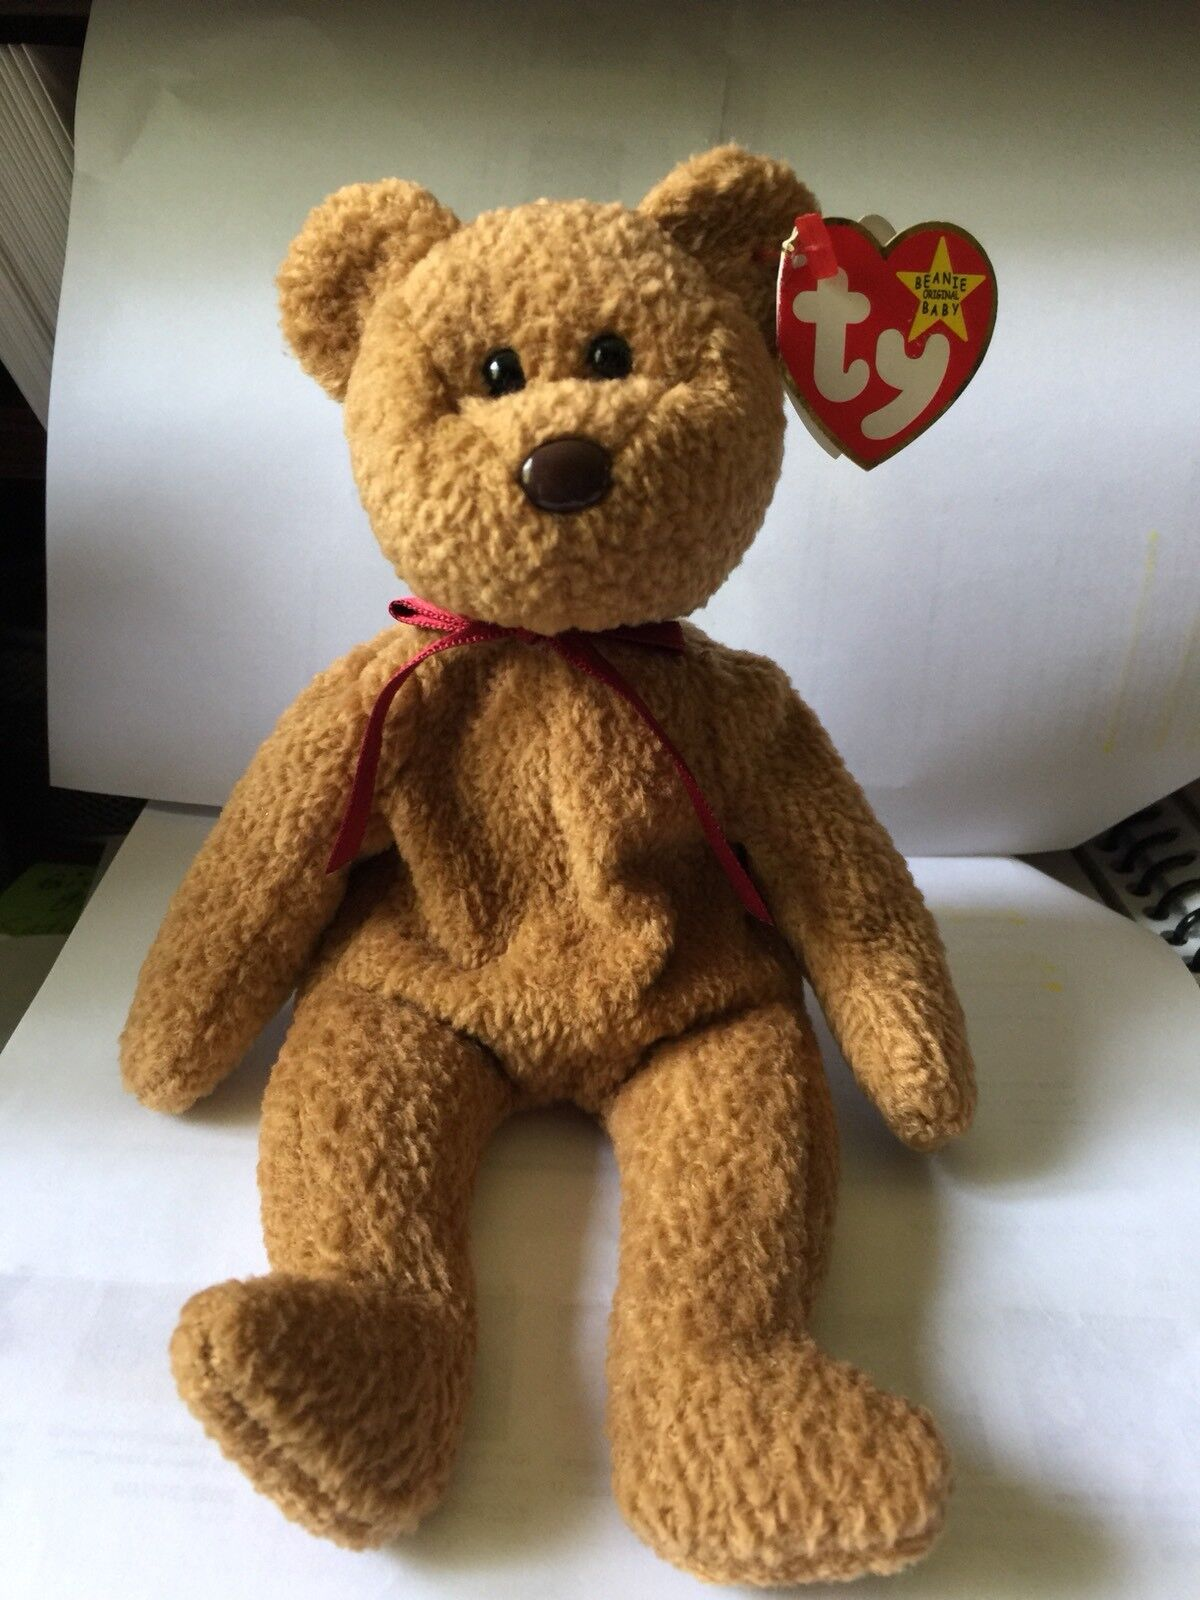 951dbd45468 TY Beanie Beanie TY Baby - RETIRED Curly Bear Rare w errors in Excellent  Condition f16e88